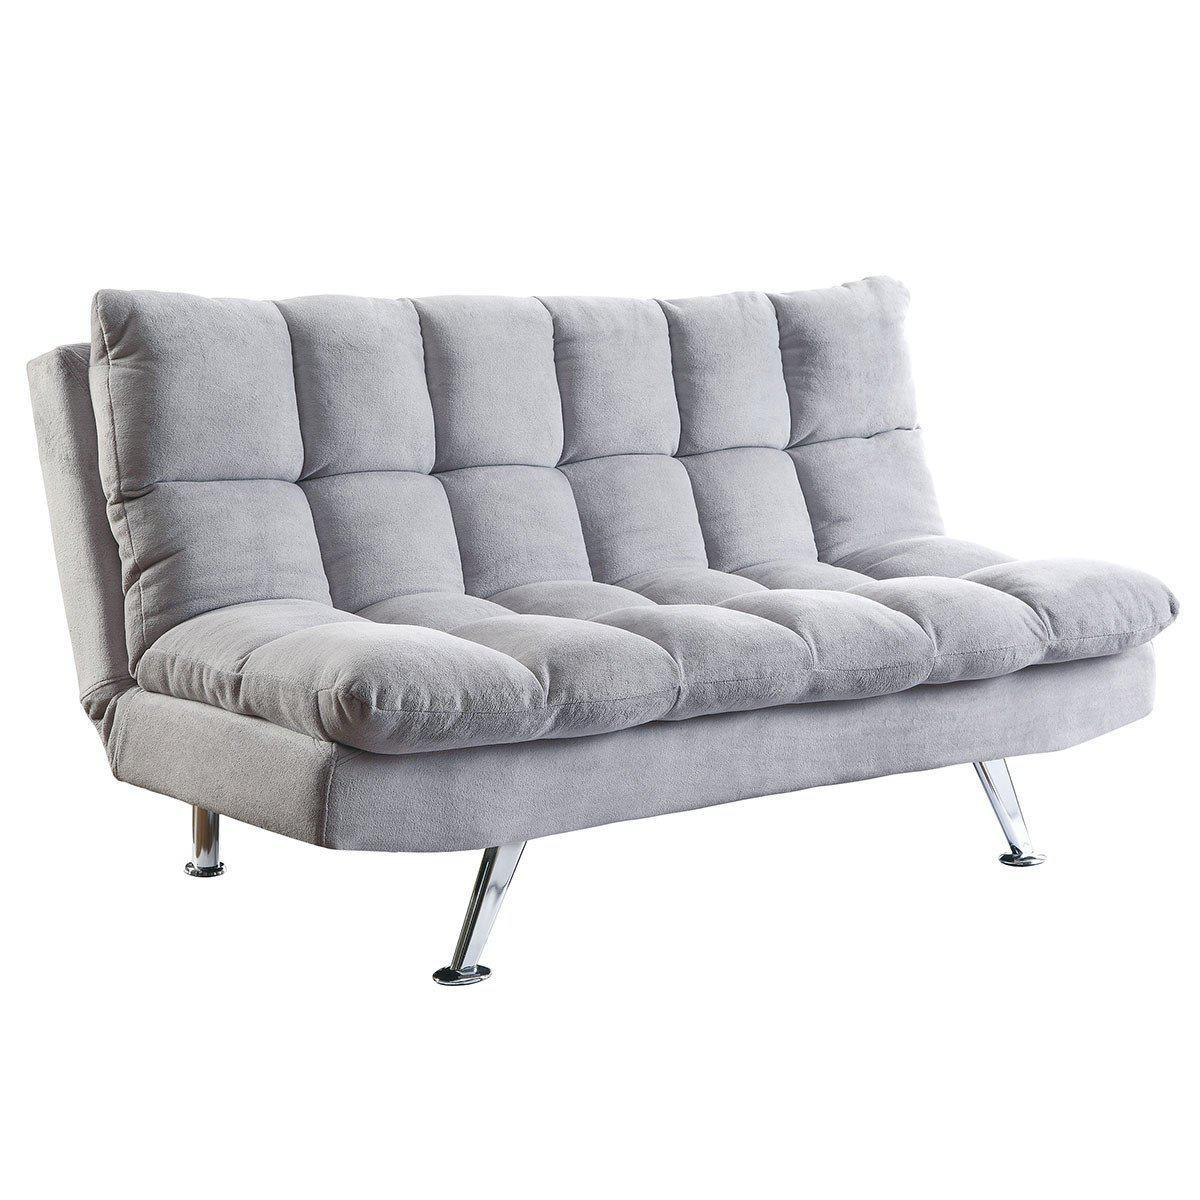 Mattis Sofa-sofas-Jennifer Furniture